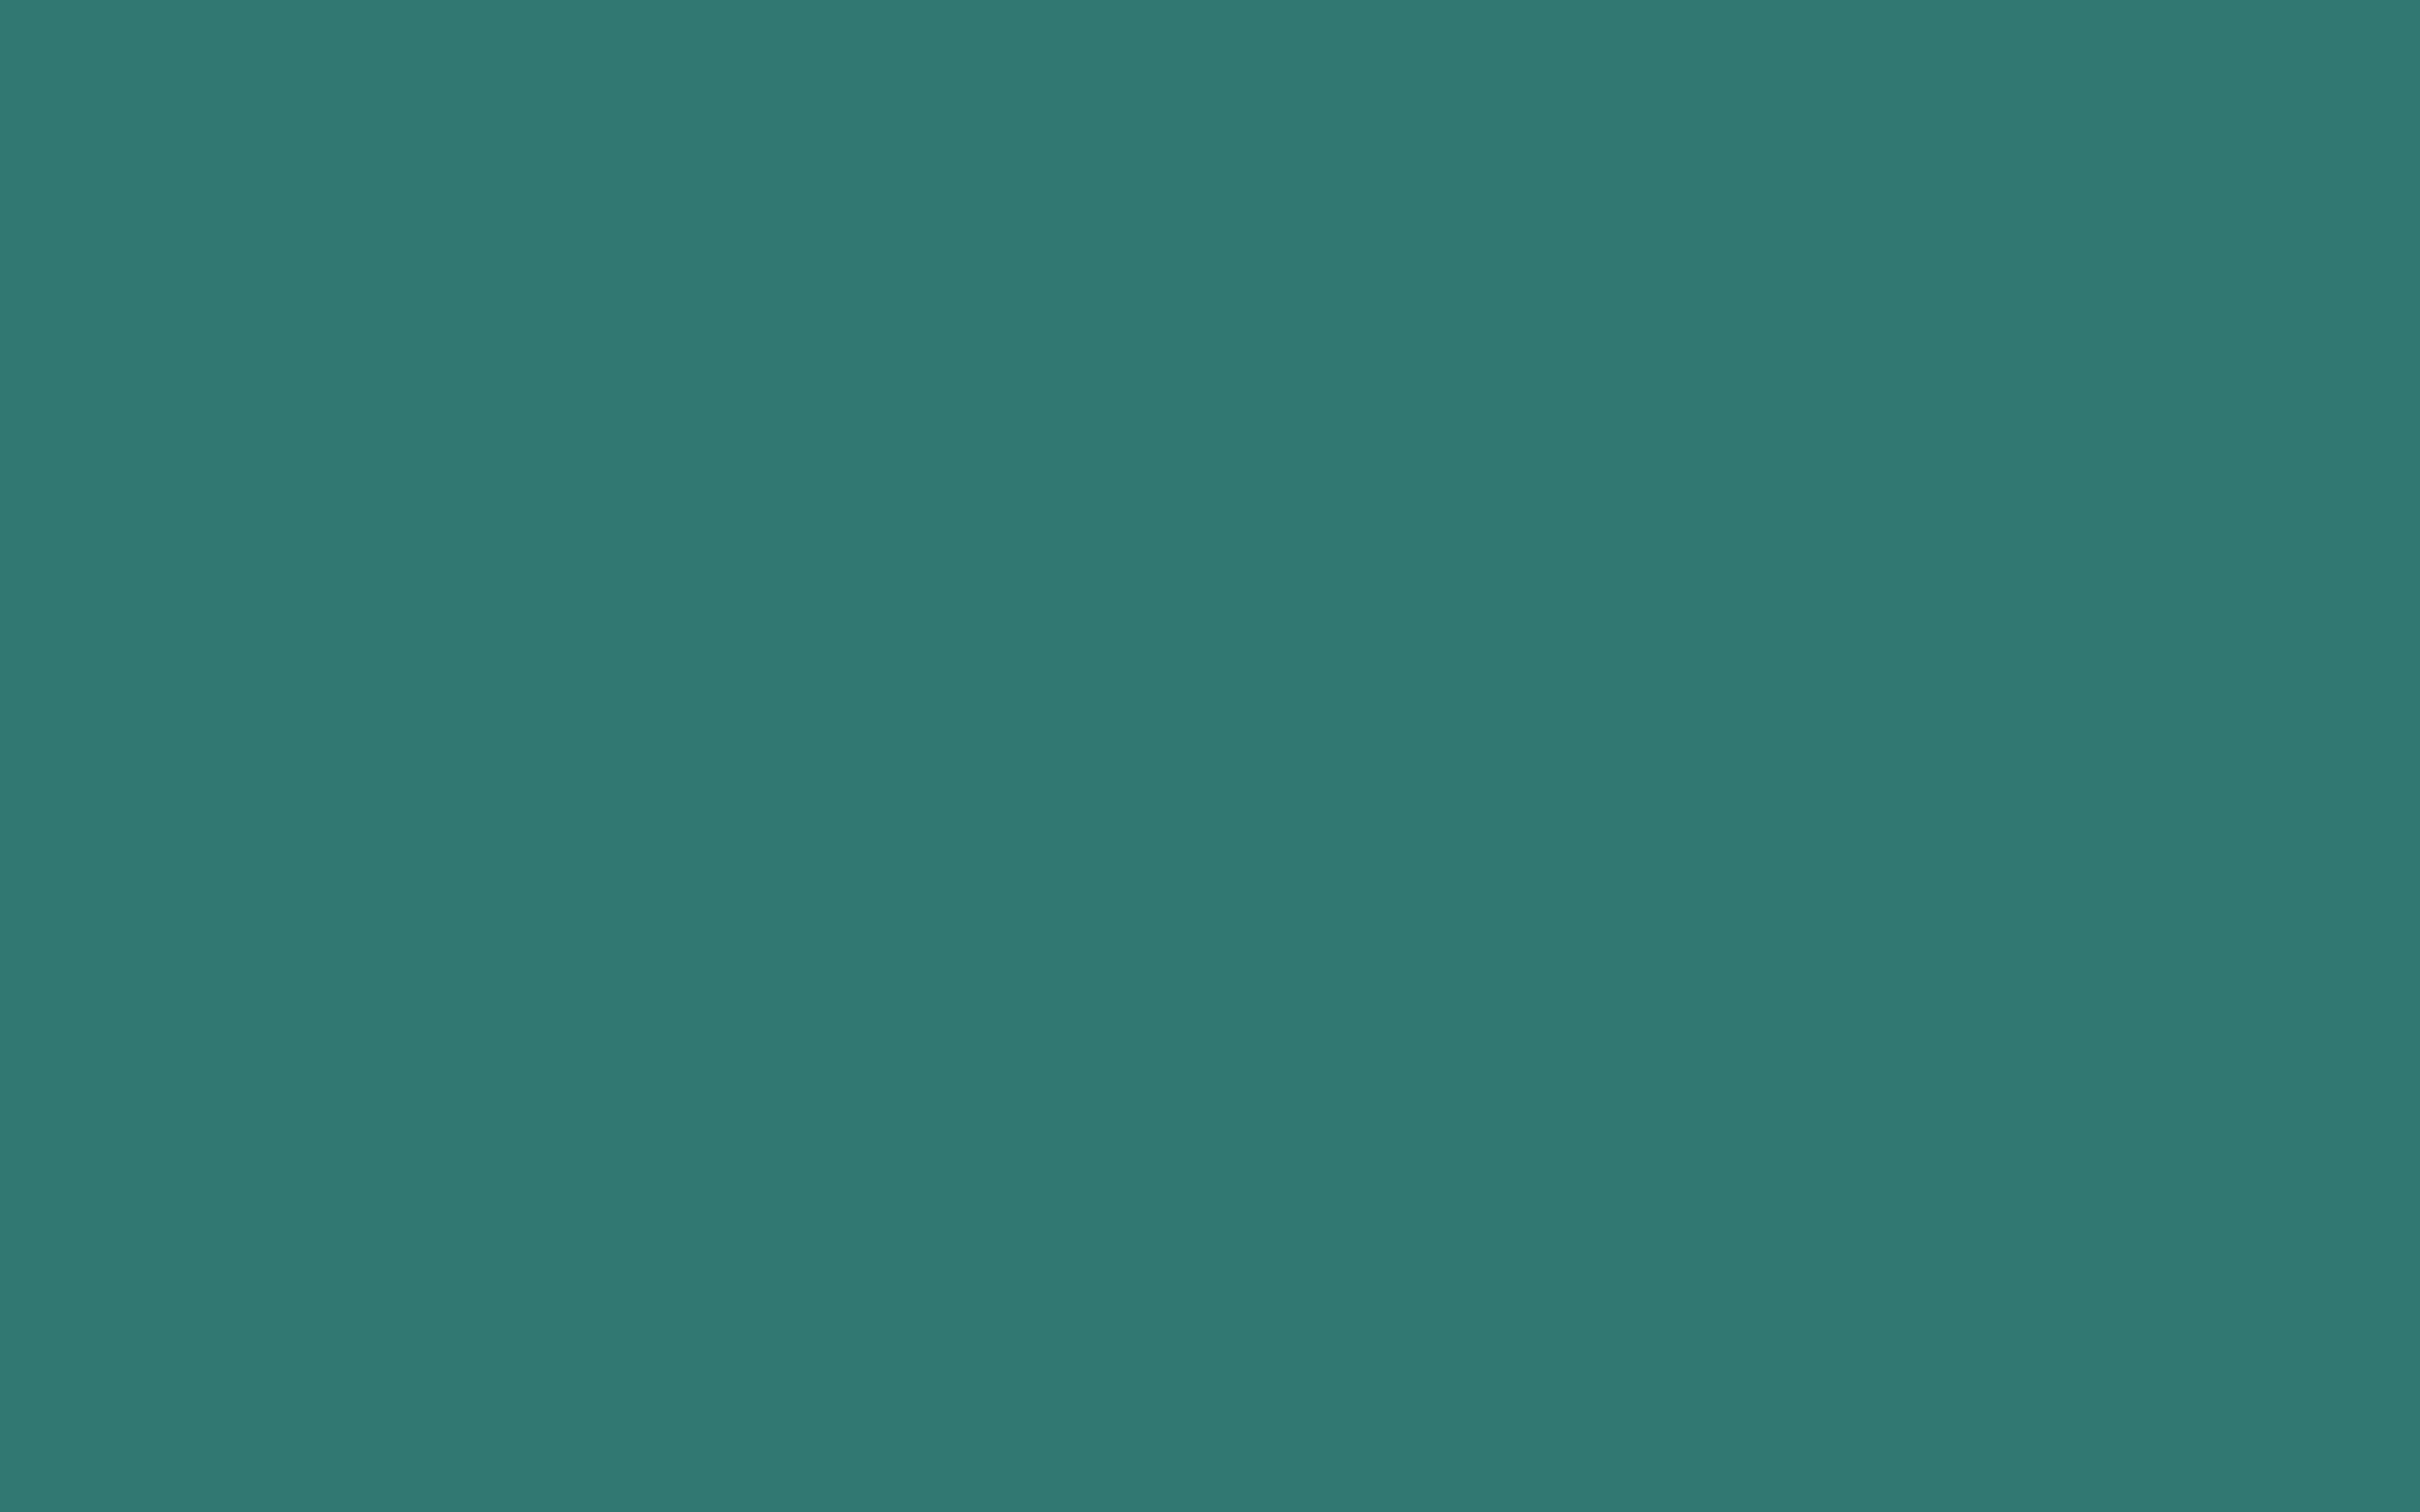 2880x1800 Myrtle Green Solid Color Background